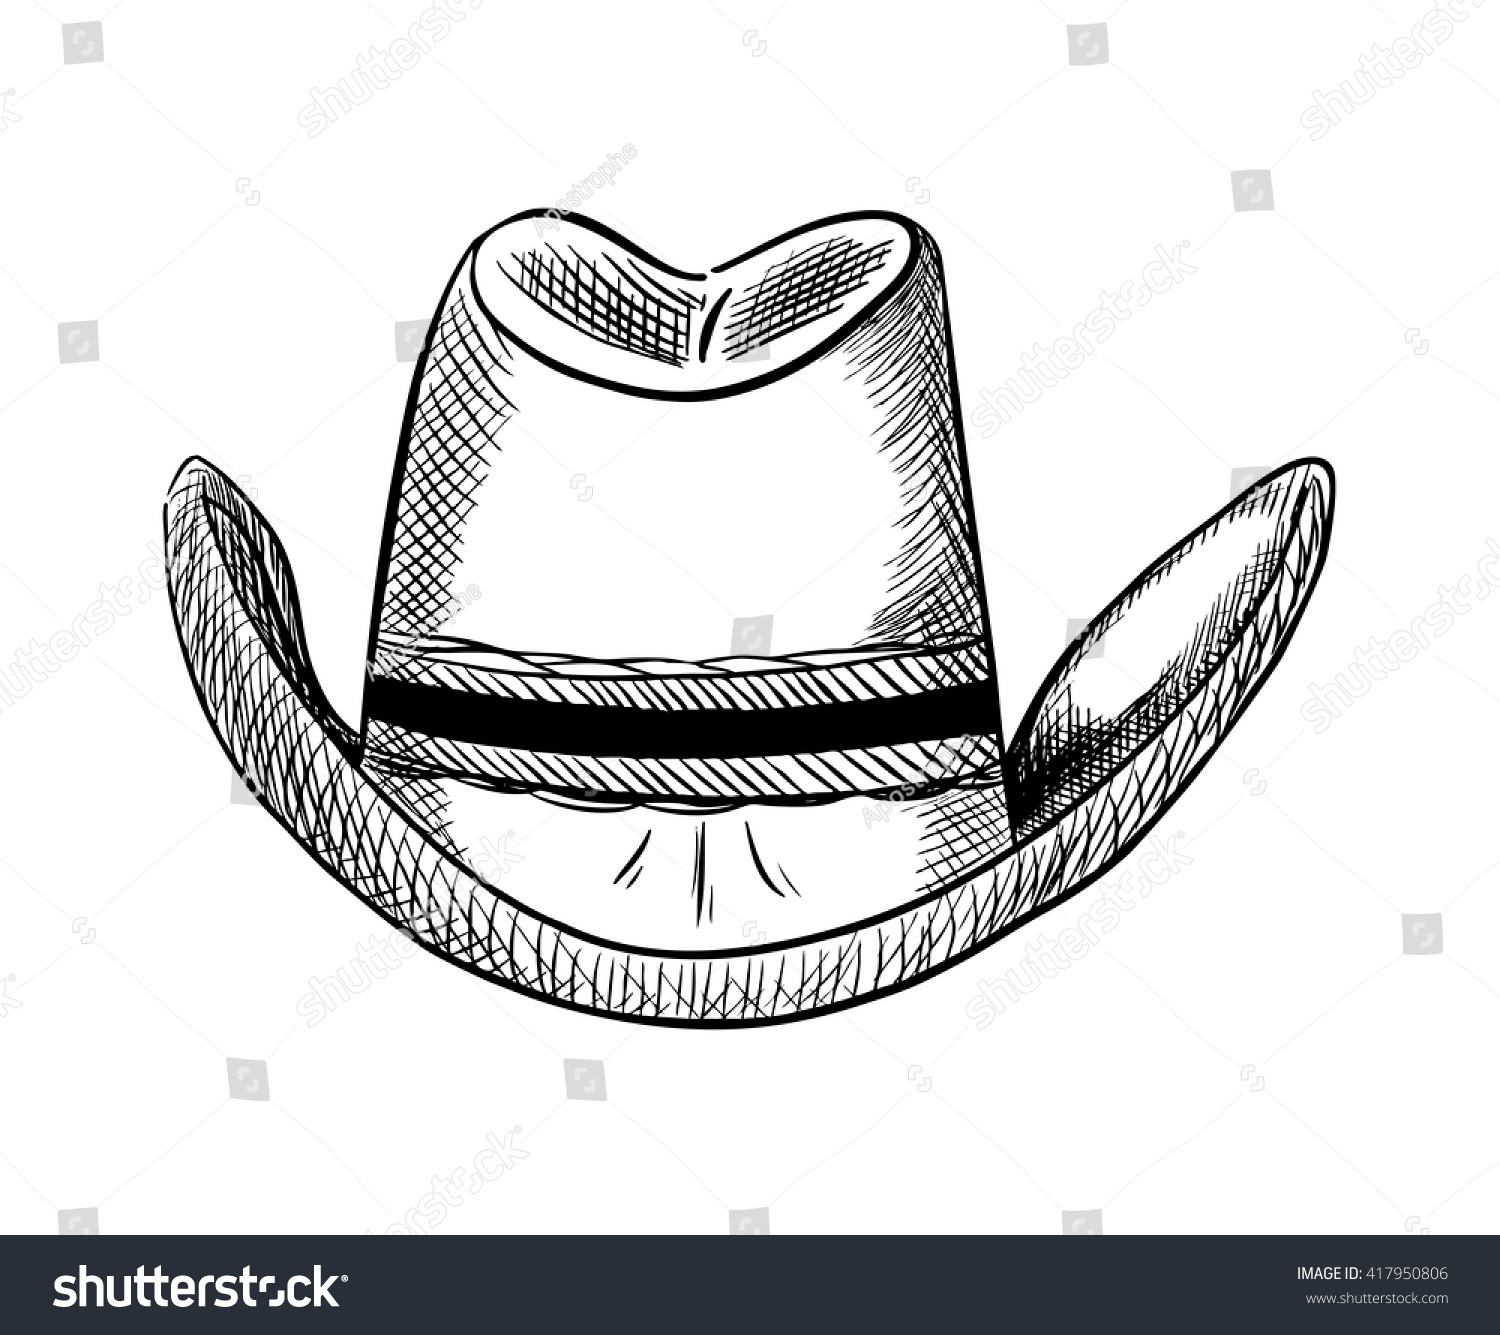 Cowboy Hat Vector Stock Vector (Royalty Free) 417950806 - Shutterstock aa3d0e83ff9